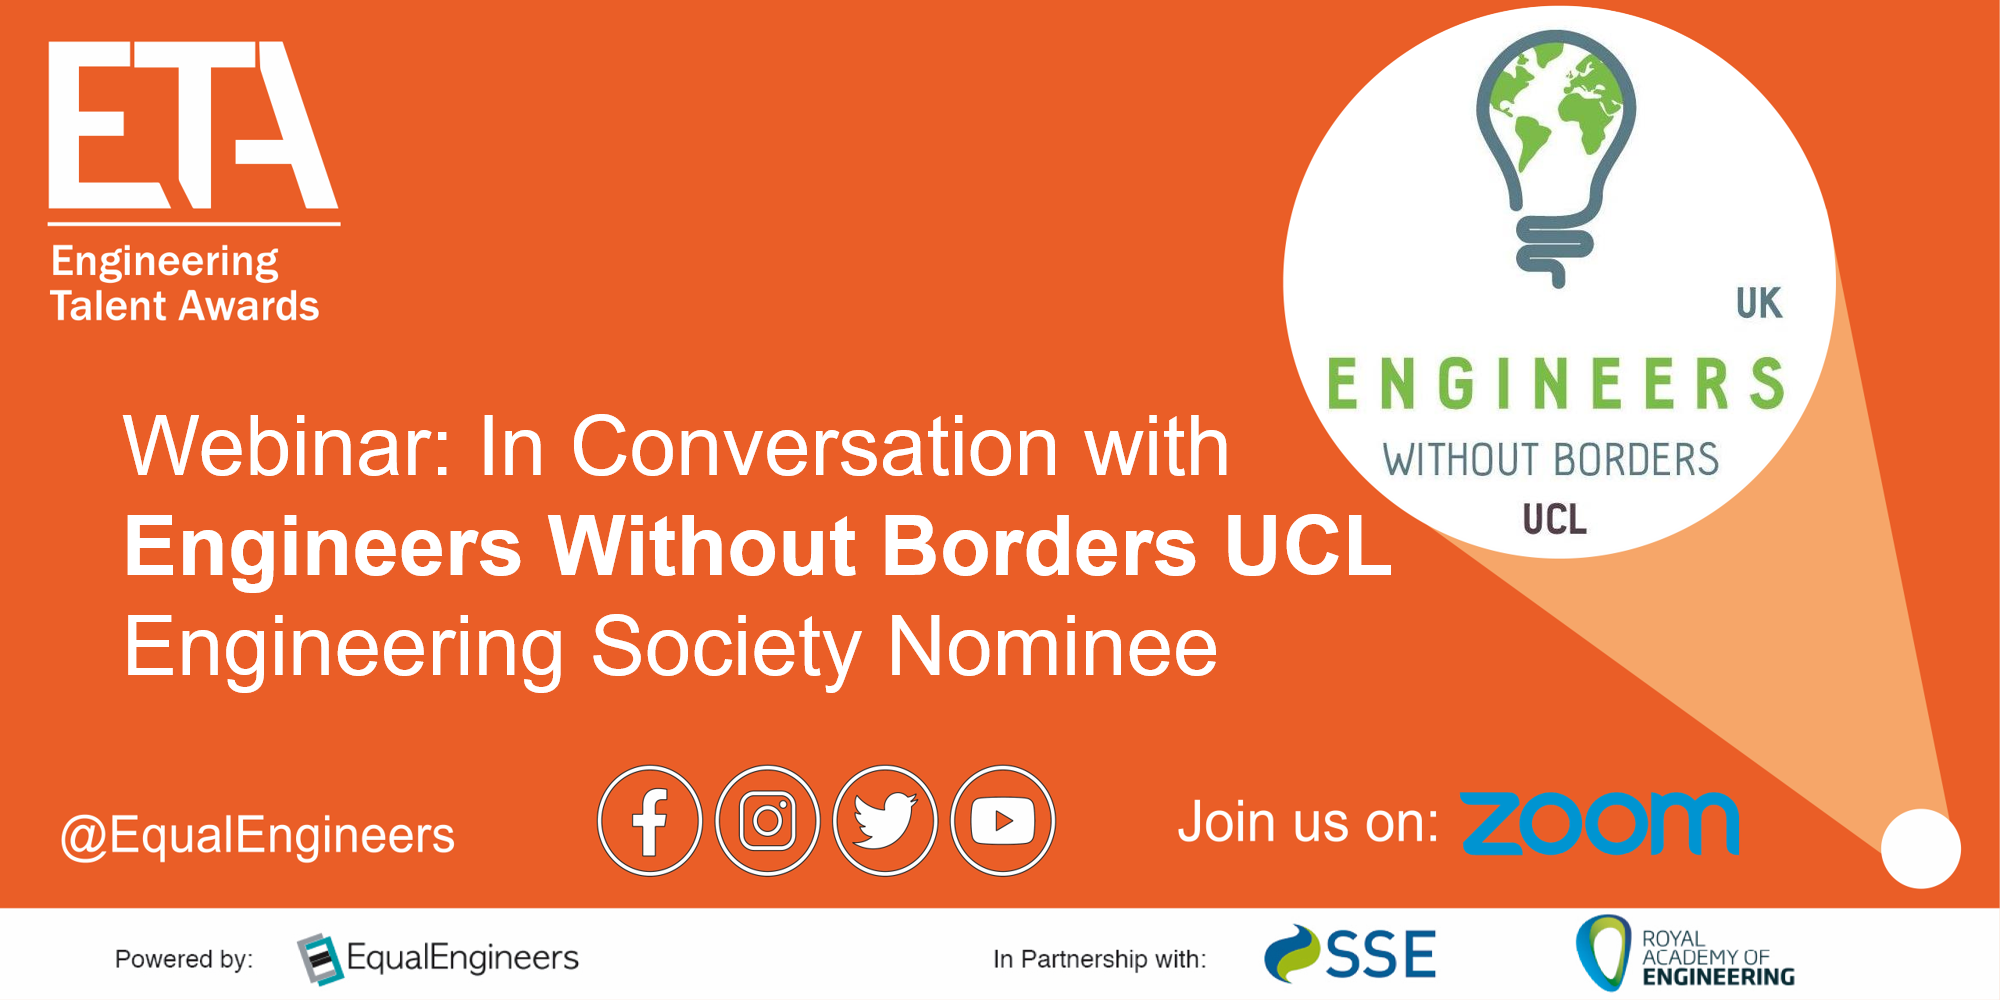 engineering-society-nominee-engineers-without-borders-university-of-central-london